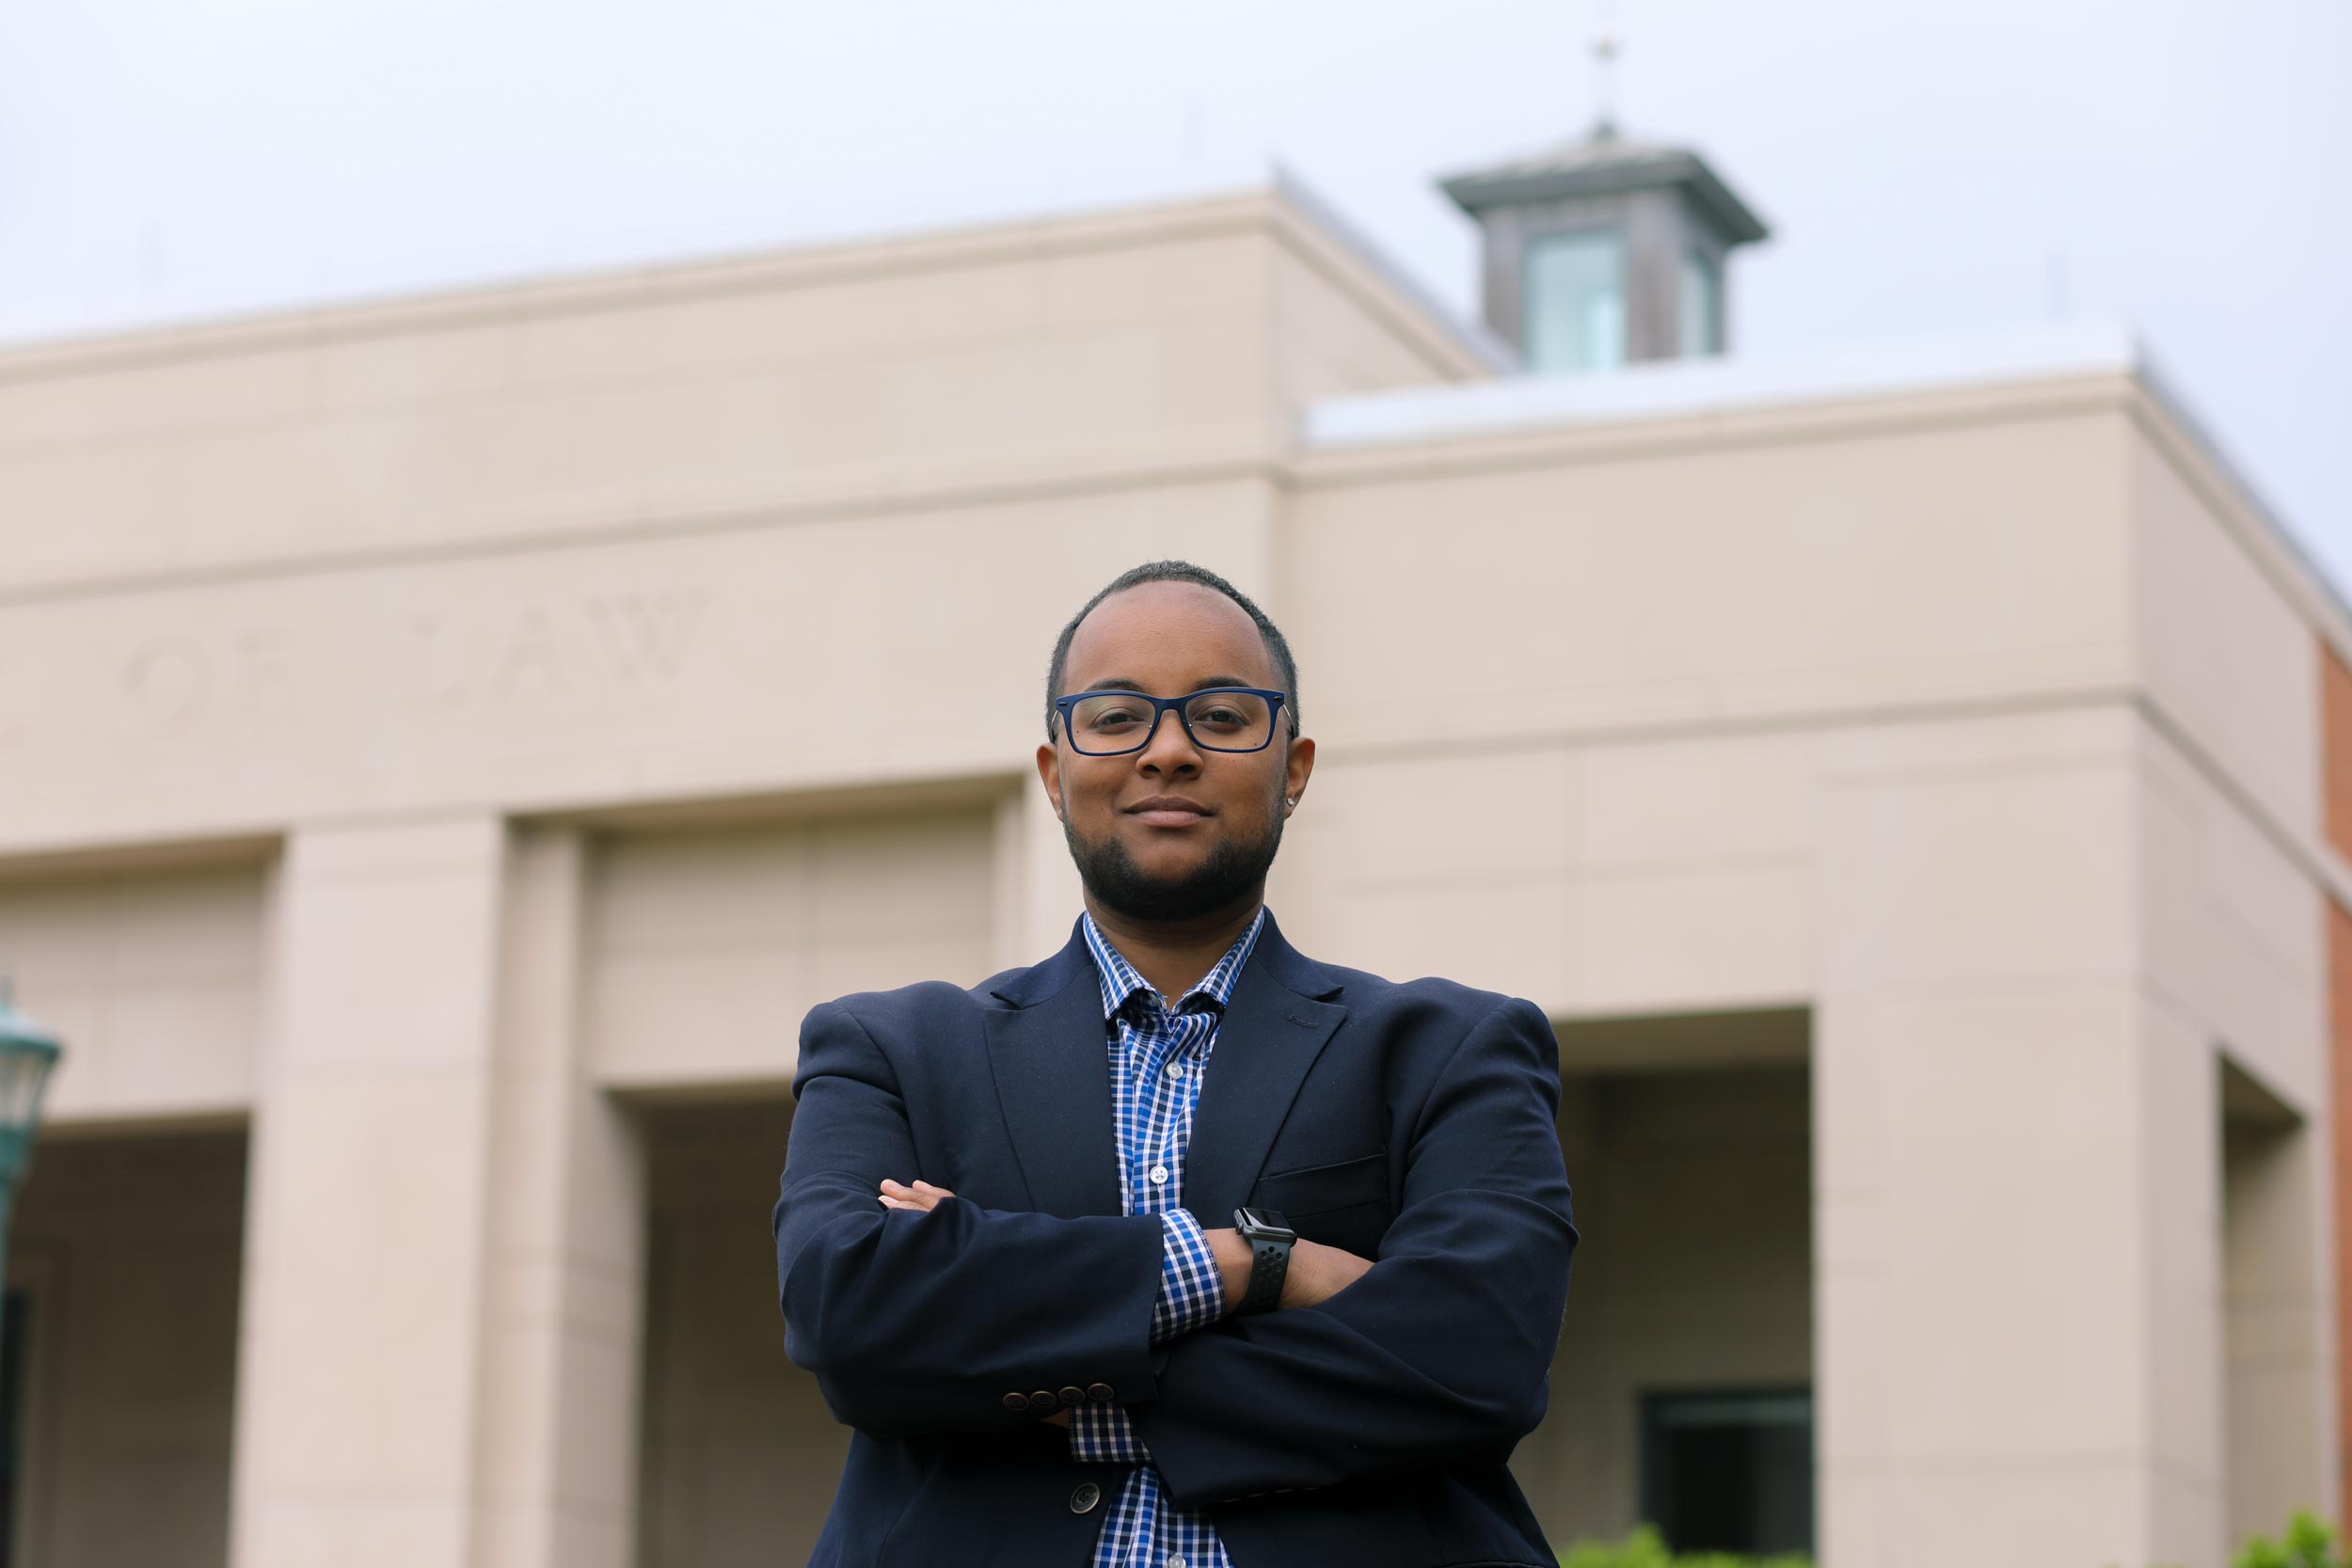 """Activist-turned-attorney Jah Akande plans to return to his native Richmond to practice law. """"I am directly connected and accountable to my community,"""" he said. """"There's so much to do."""""""